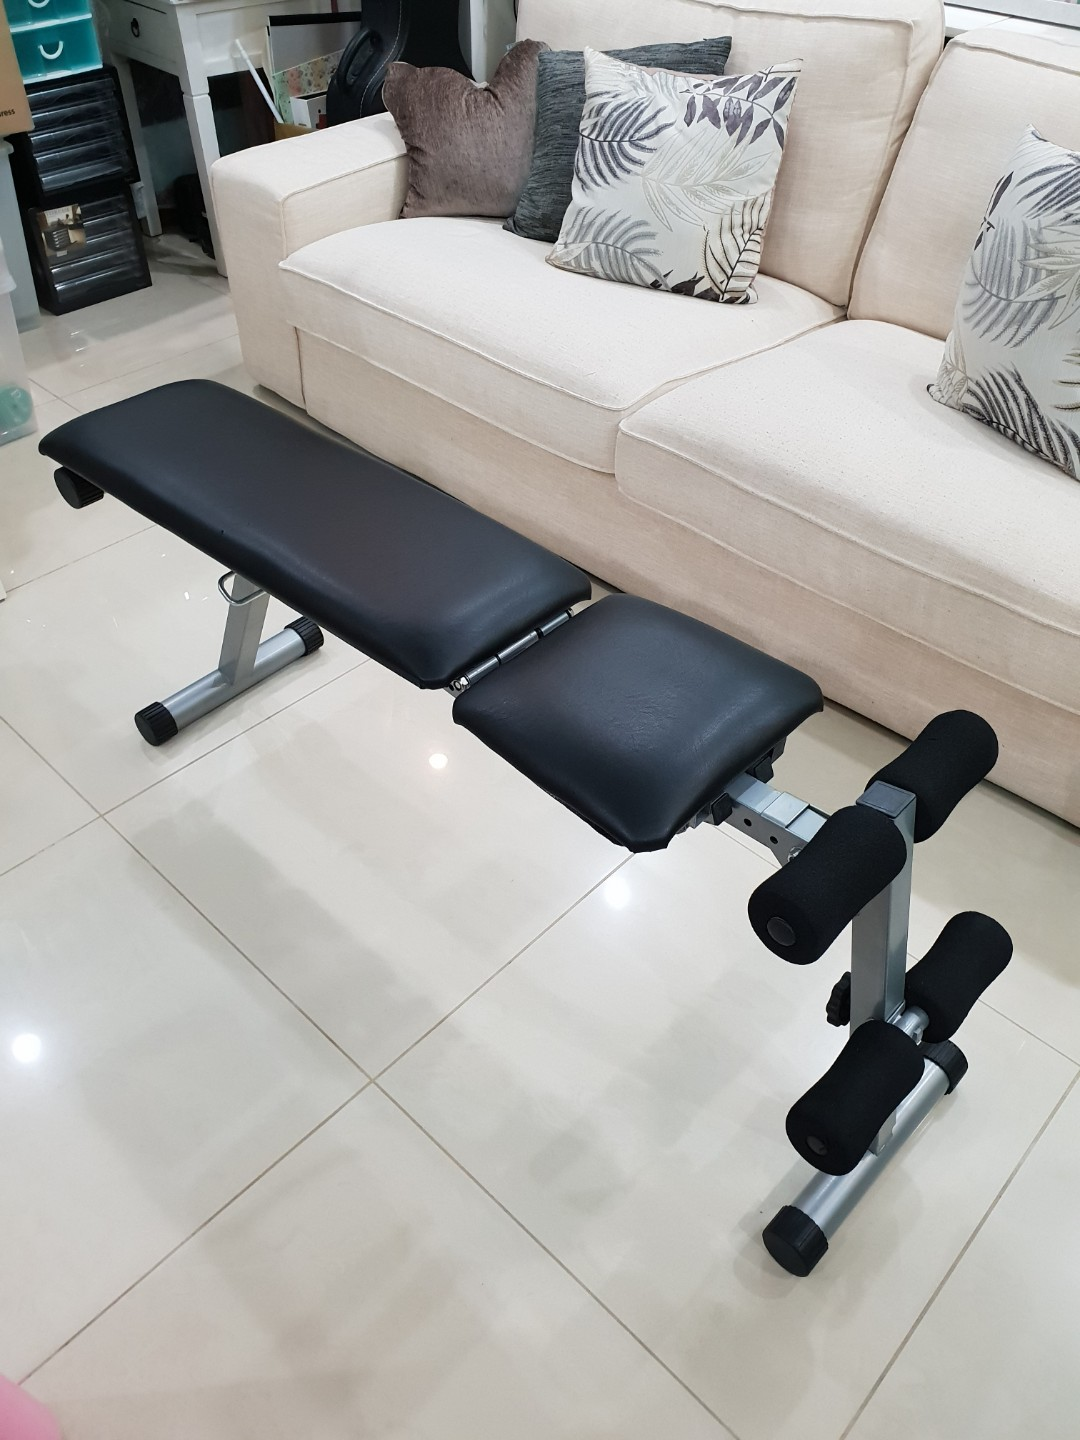 Fabulous Foldable Fitness Exercise Bench Press Seat Chair Alphanode Cool Chair Designs And Ideas Alphanodeonline